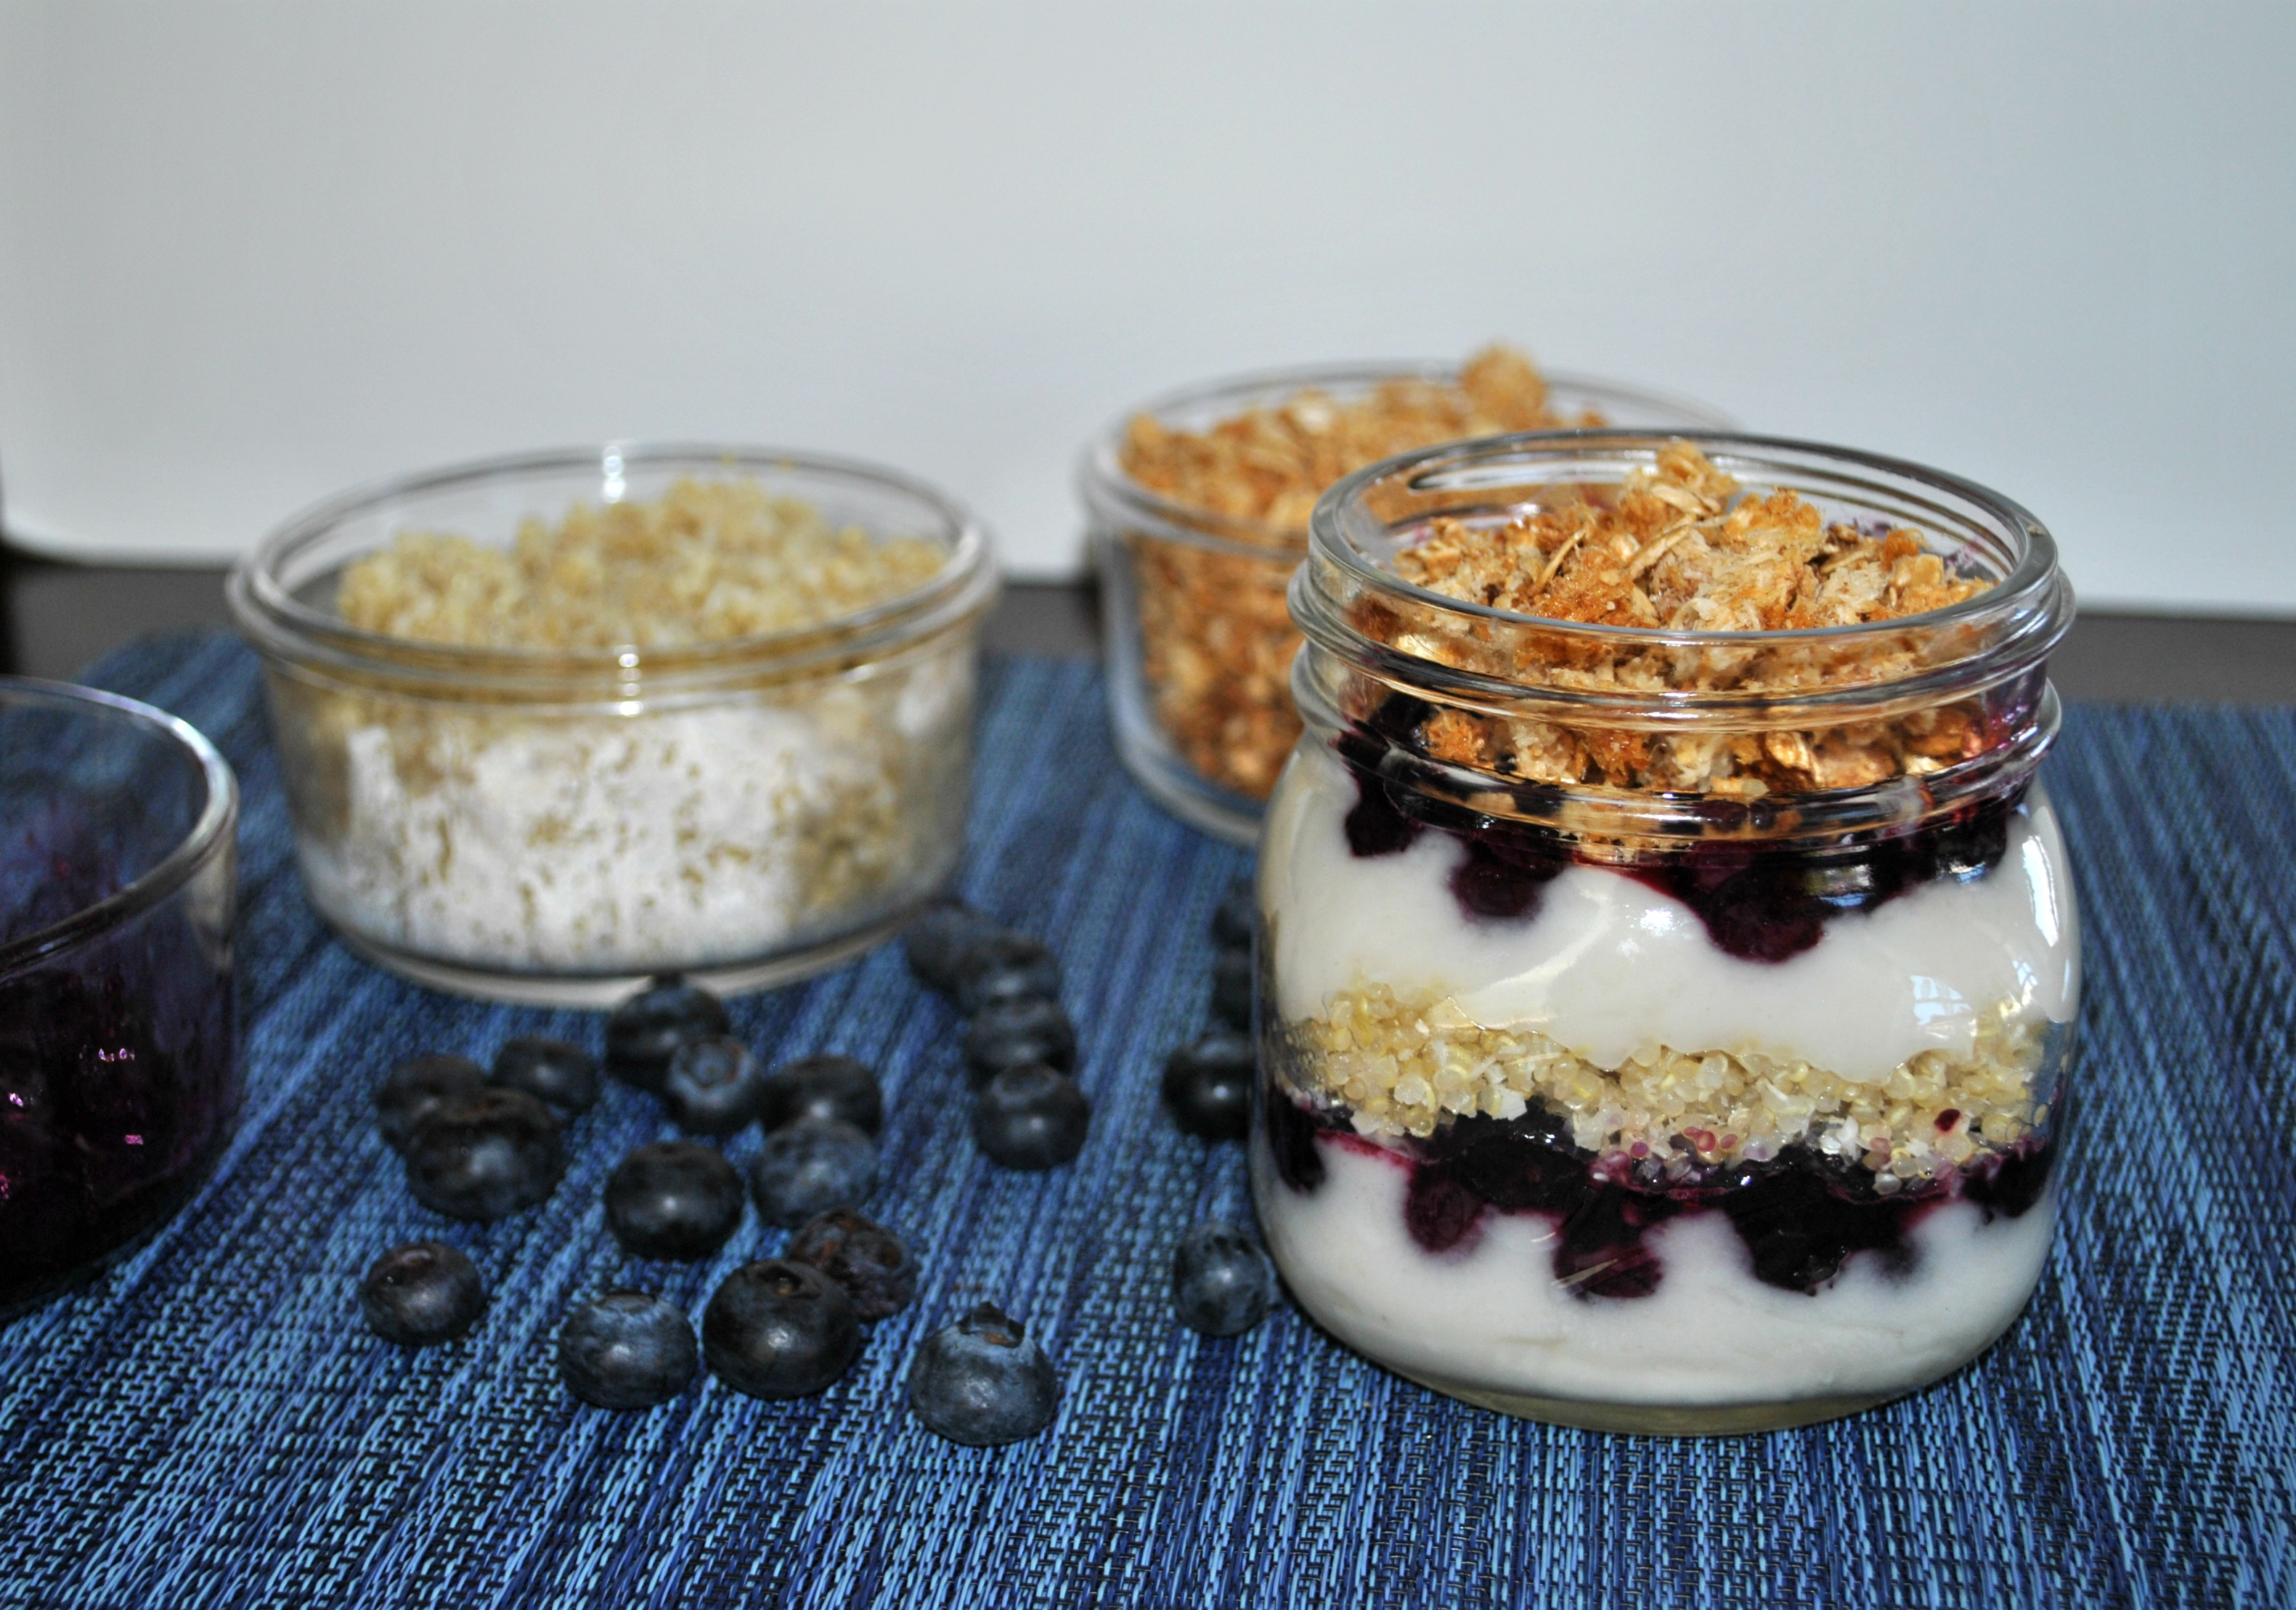 Roasted Blueberry Coconut Parfait with Quinoa